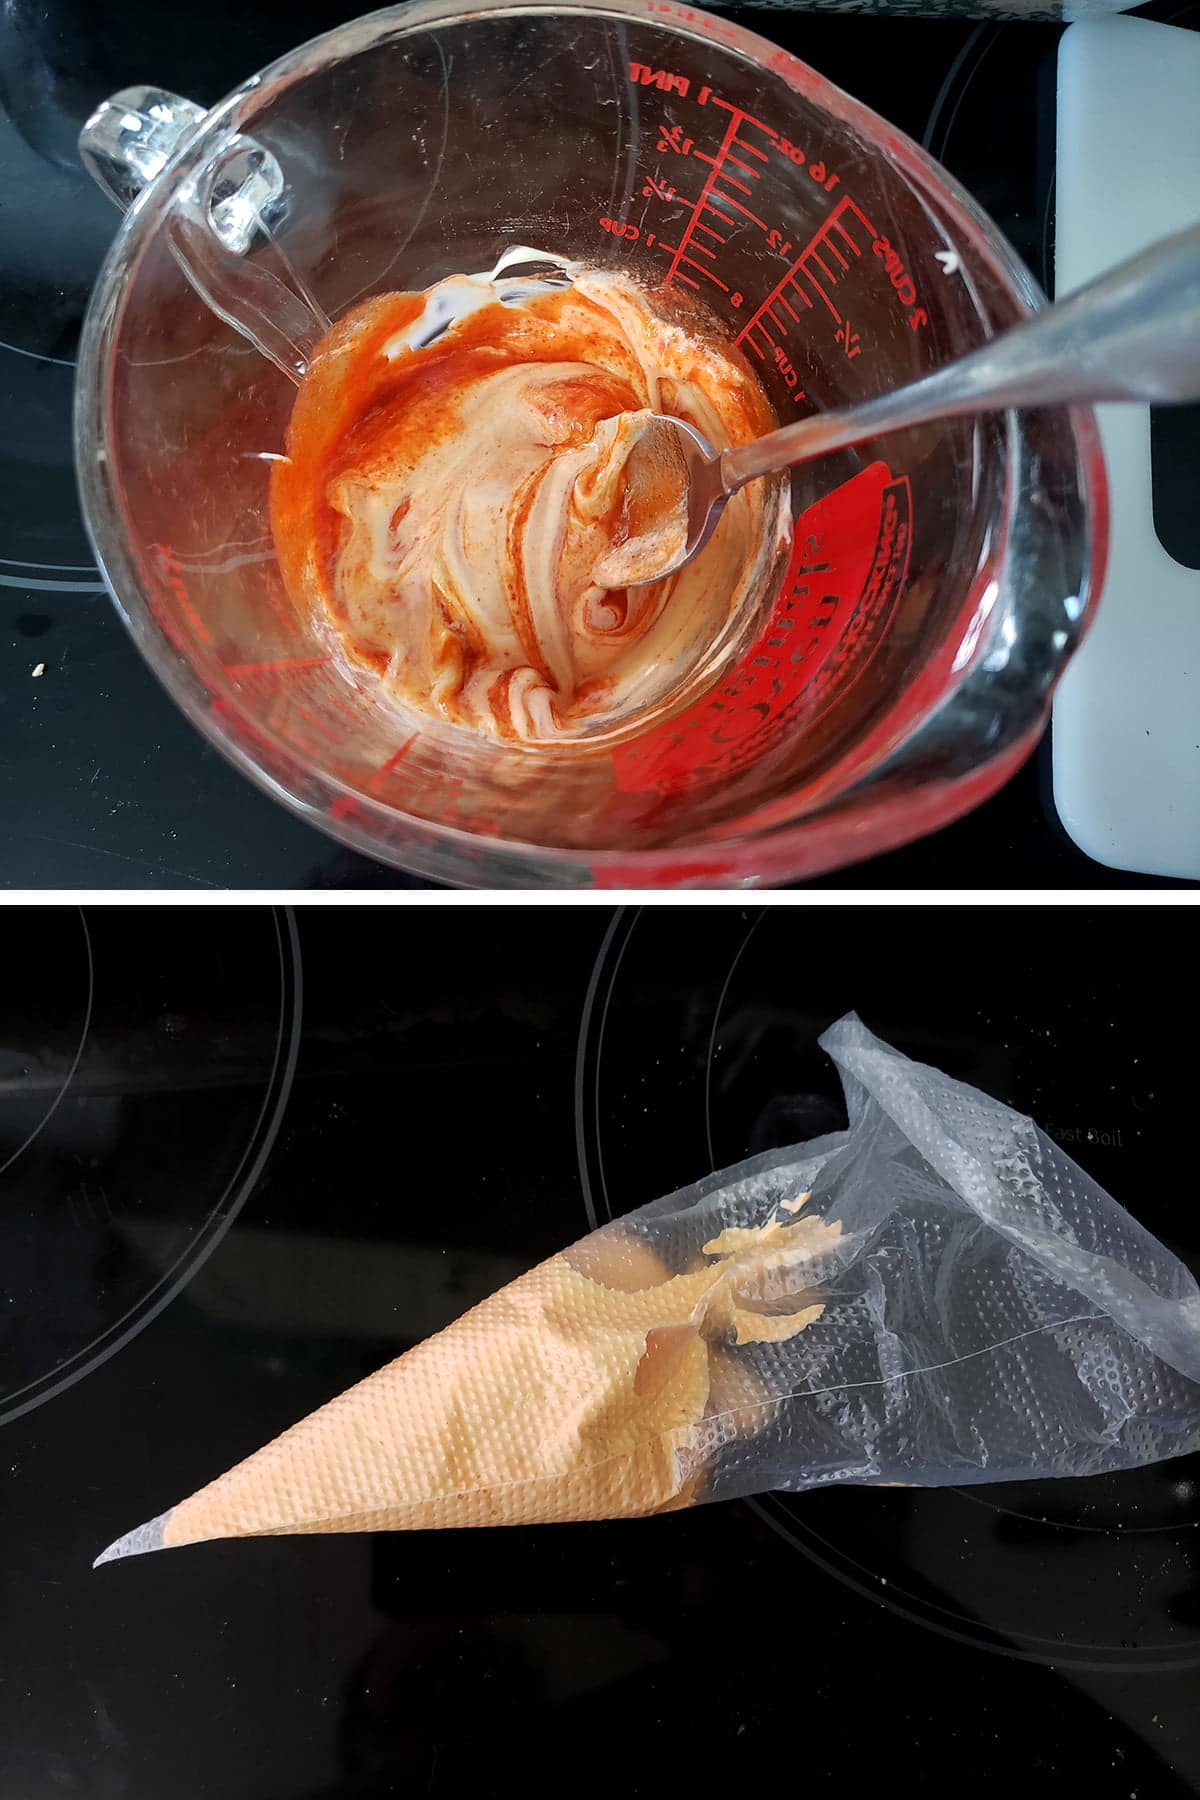 A two part compilation image showing mayonnaise and sriarcha being mixed in a glass measuring cup, and that mixture in a clear plastic pastry bag.